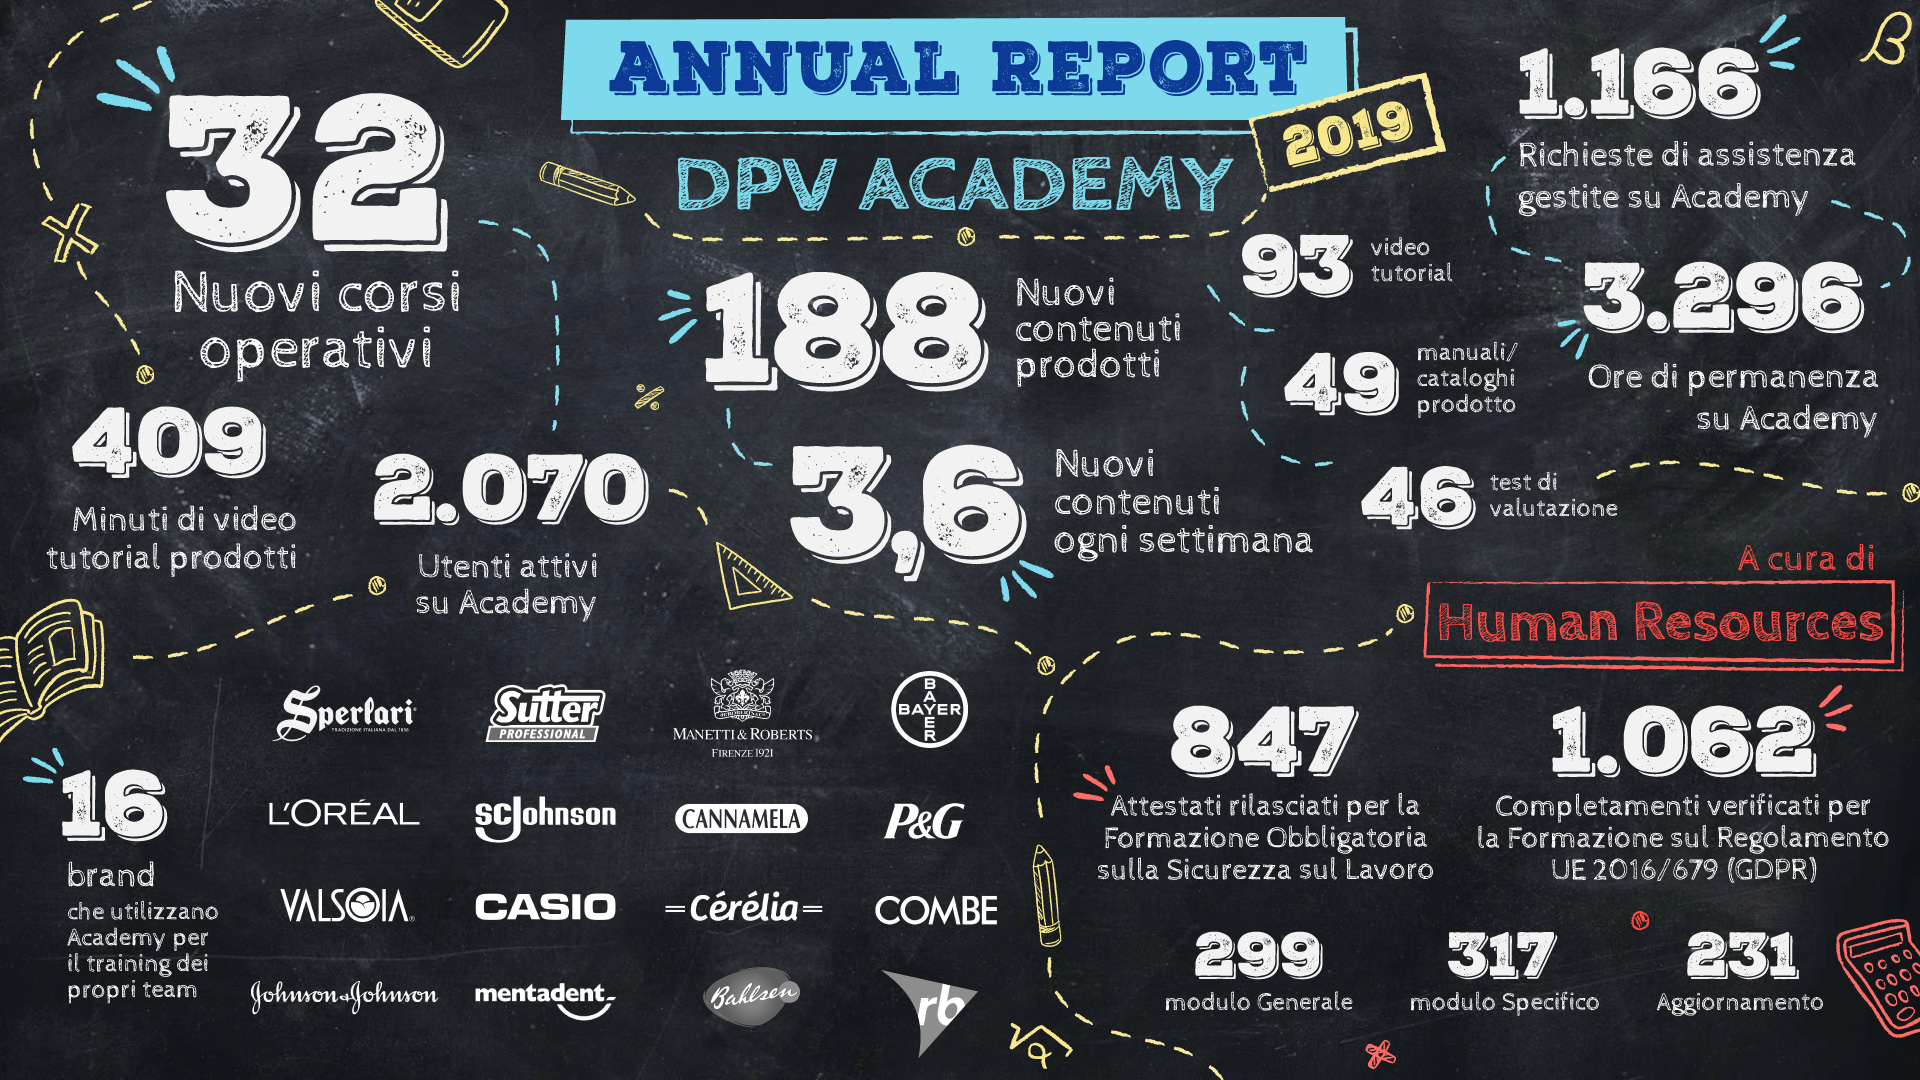 DPV Academy | Annual Report 2019